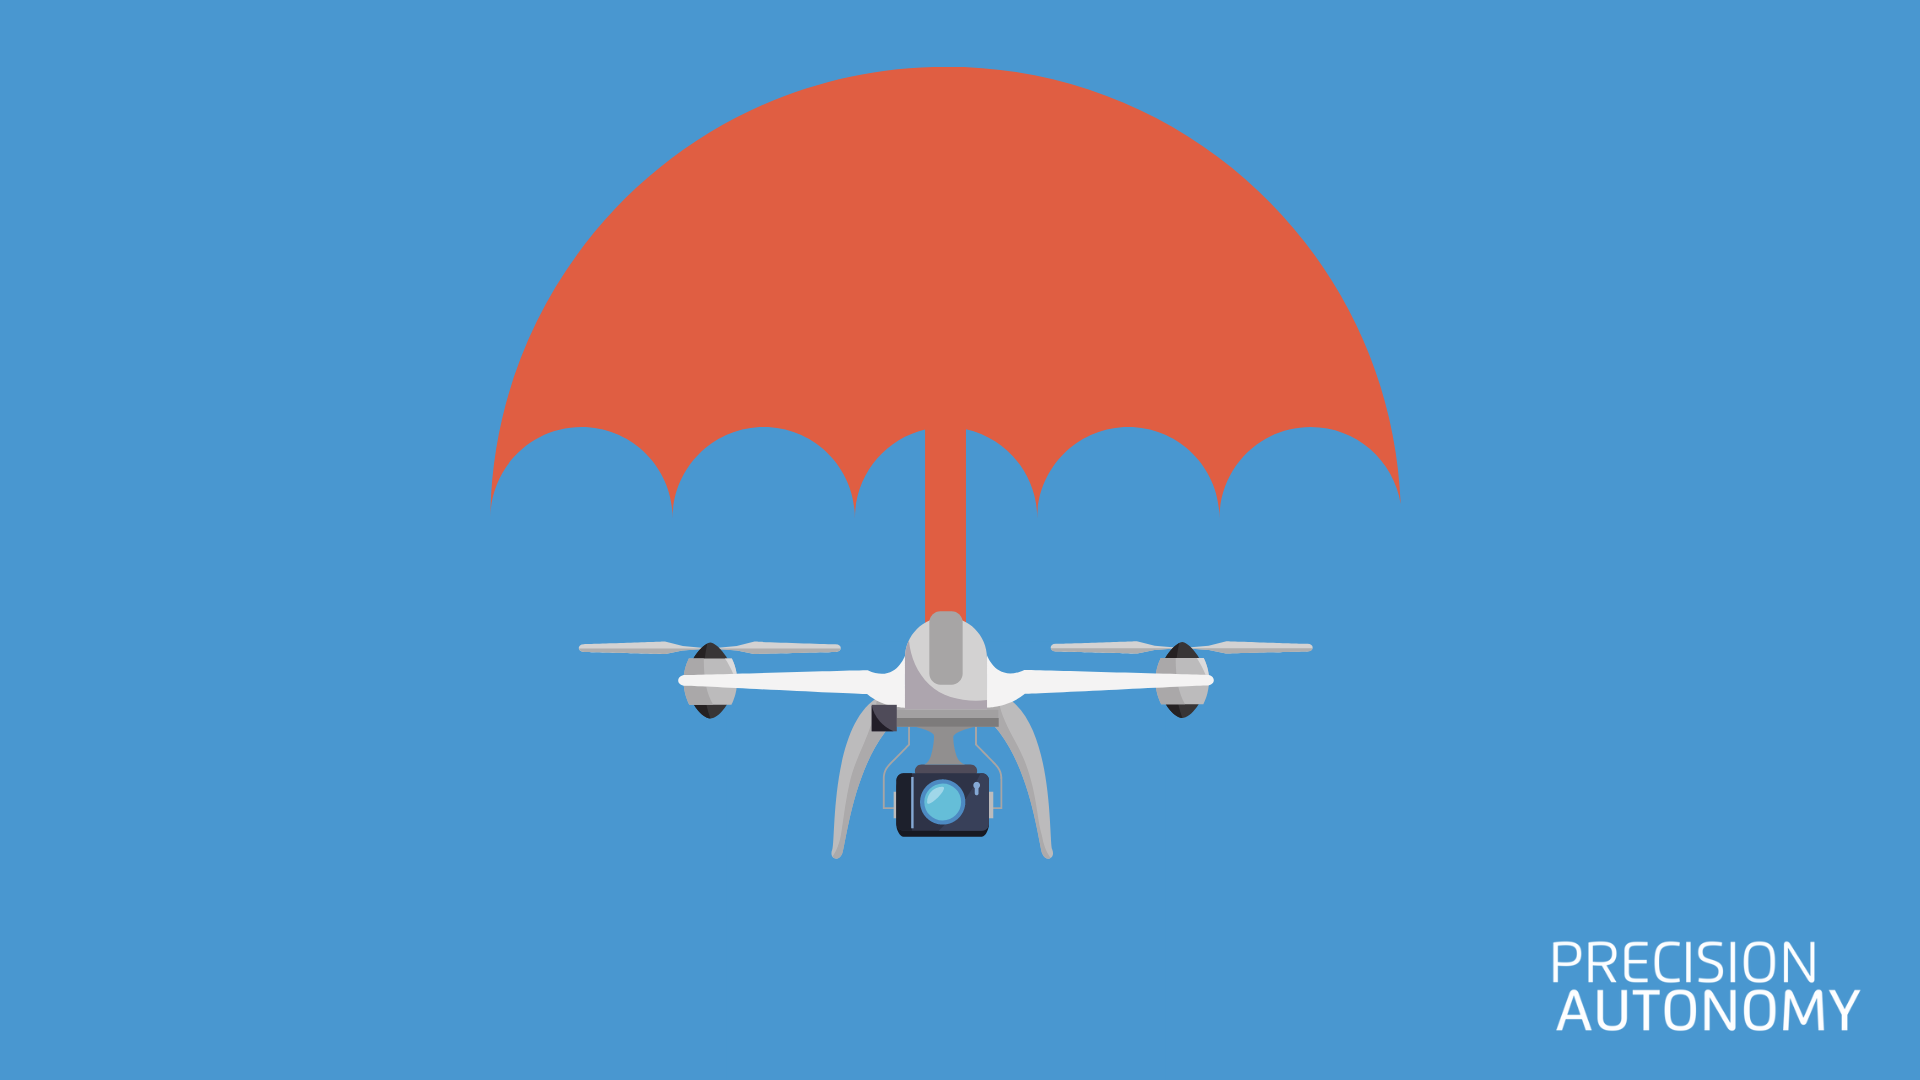 5reasonsfordroneinsurancegraphic